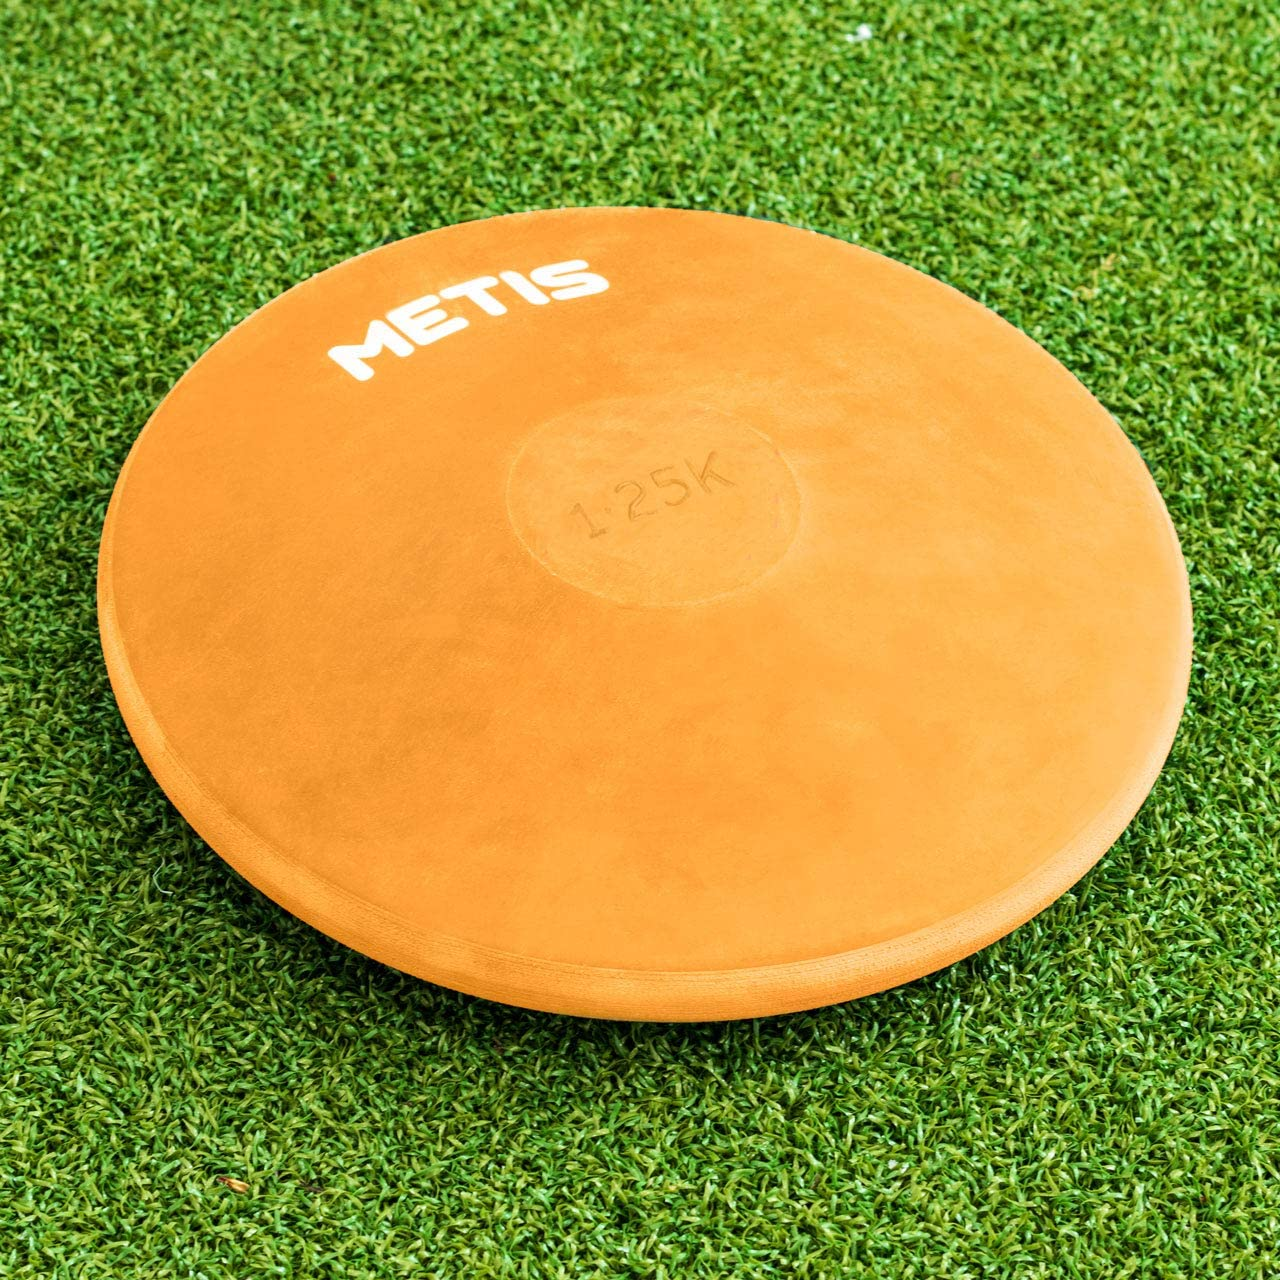 METIS Indoor Outdoor Rubber Discus 送料無料でお届けします 年中無休 Available 5 Track Weights